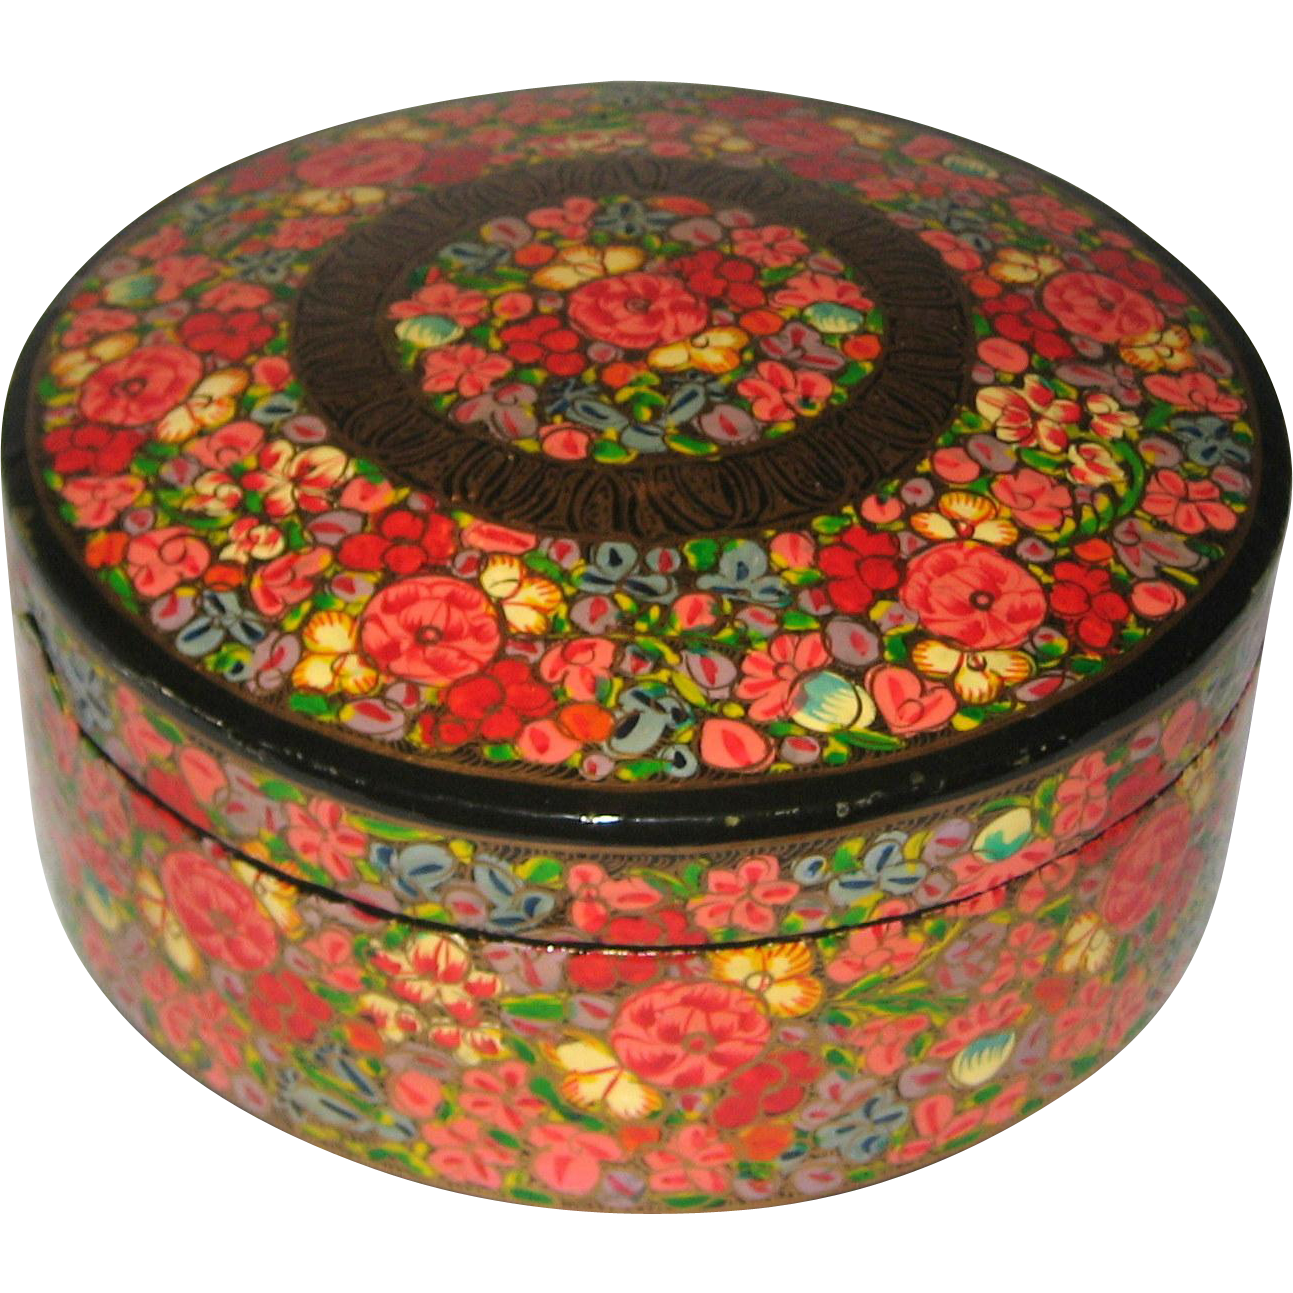 Kashmir India Papier-Mache Cache Box Hand Painted in Bright Floral Design